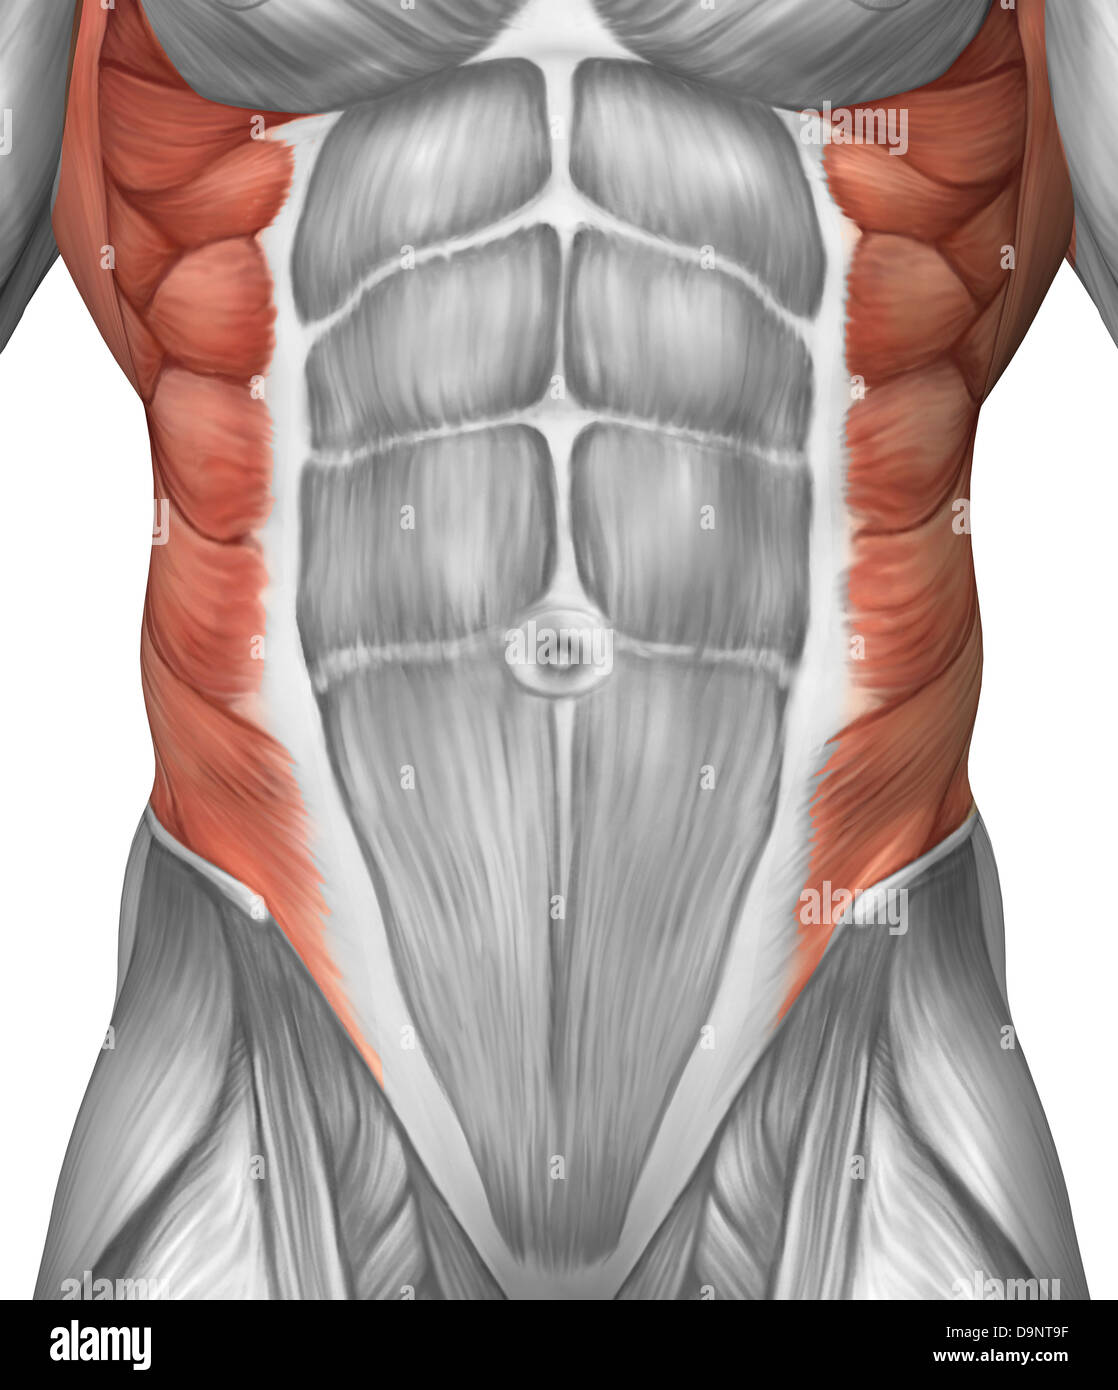 Male muscle anatomy of the abdominal wall. - Stock Image